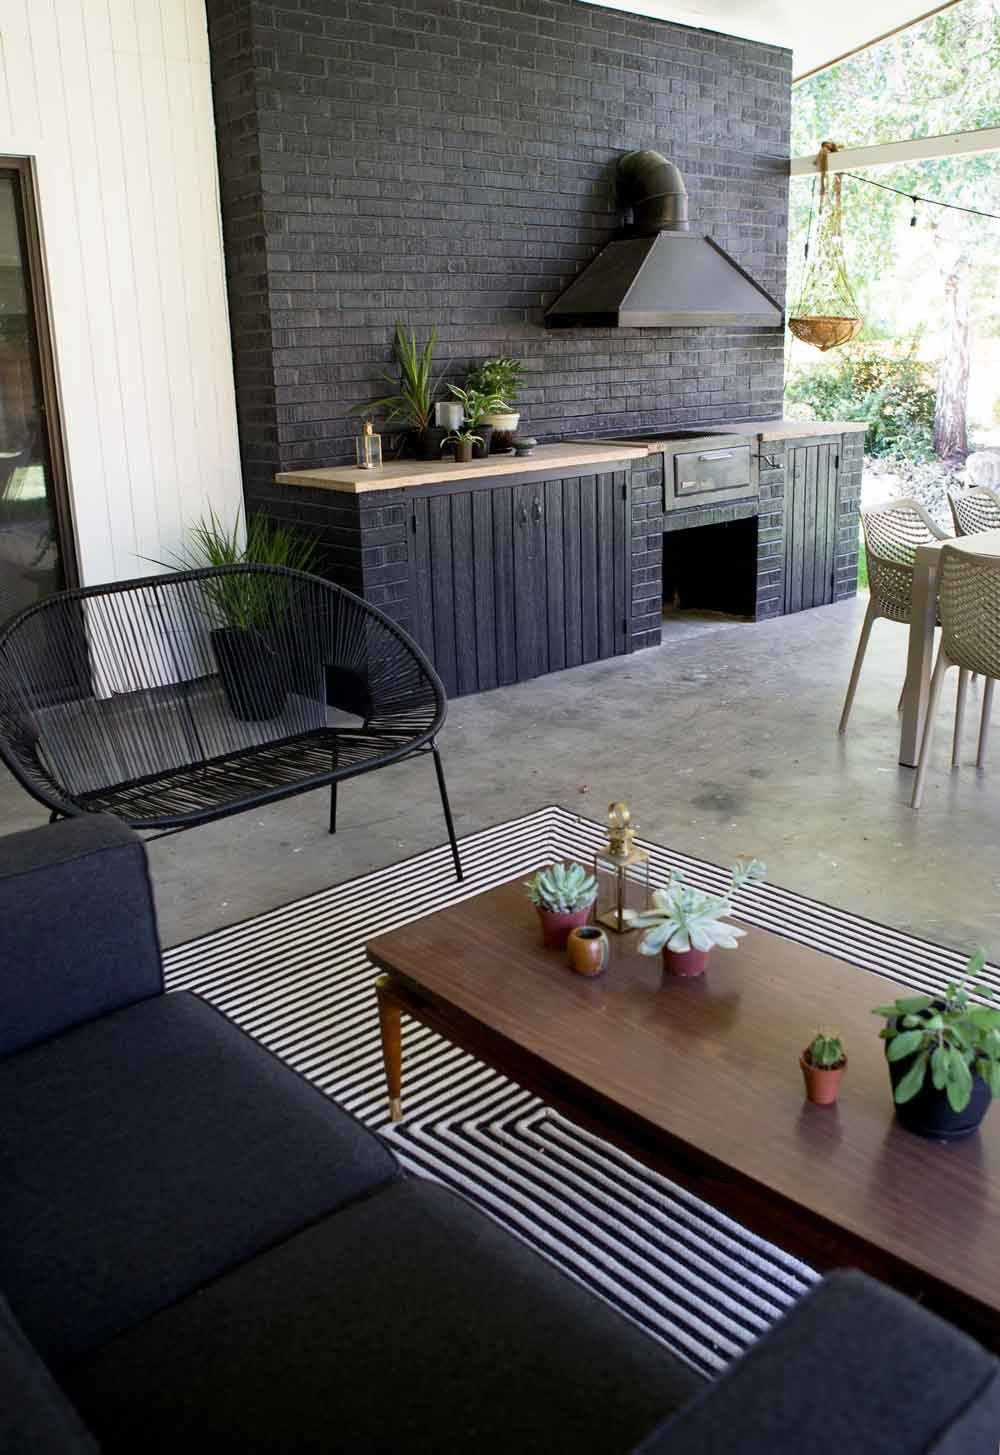 When kirsten grove first visited her 1957 mid century modern boise id home it was the outdoor space that sold her right away the patio was an instant